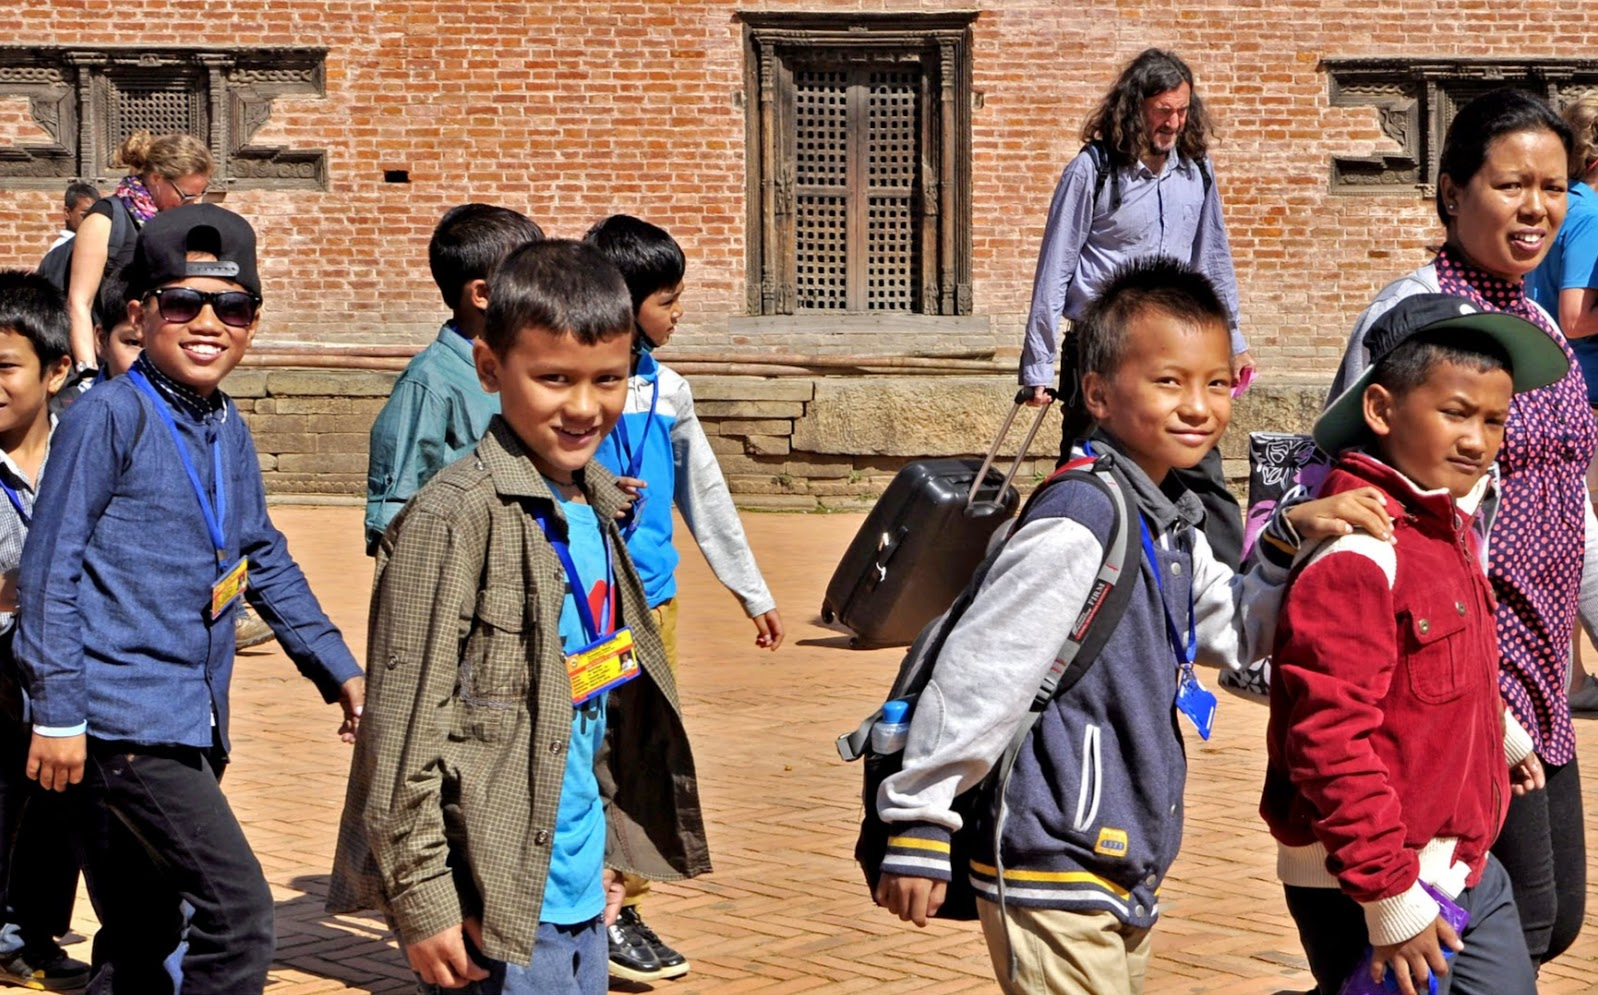 Humans of Bhaktapur